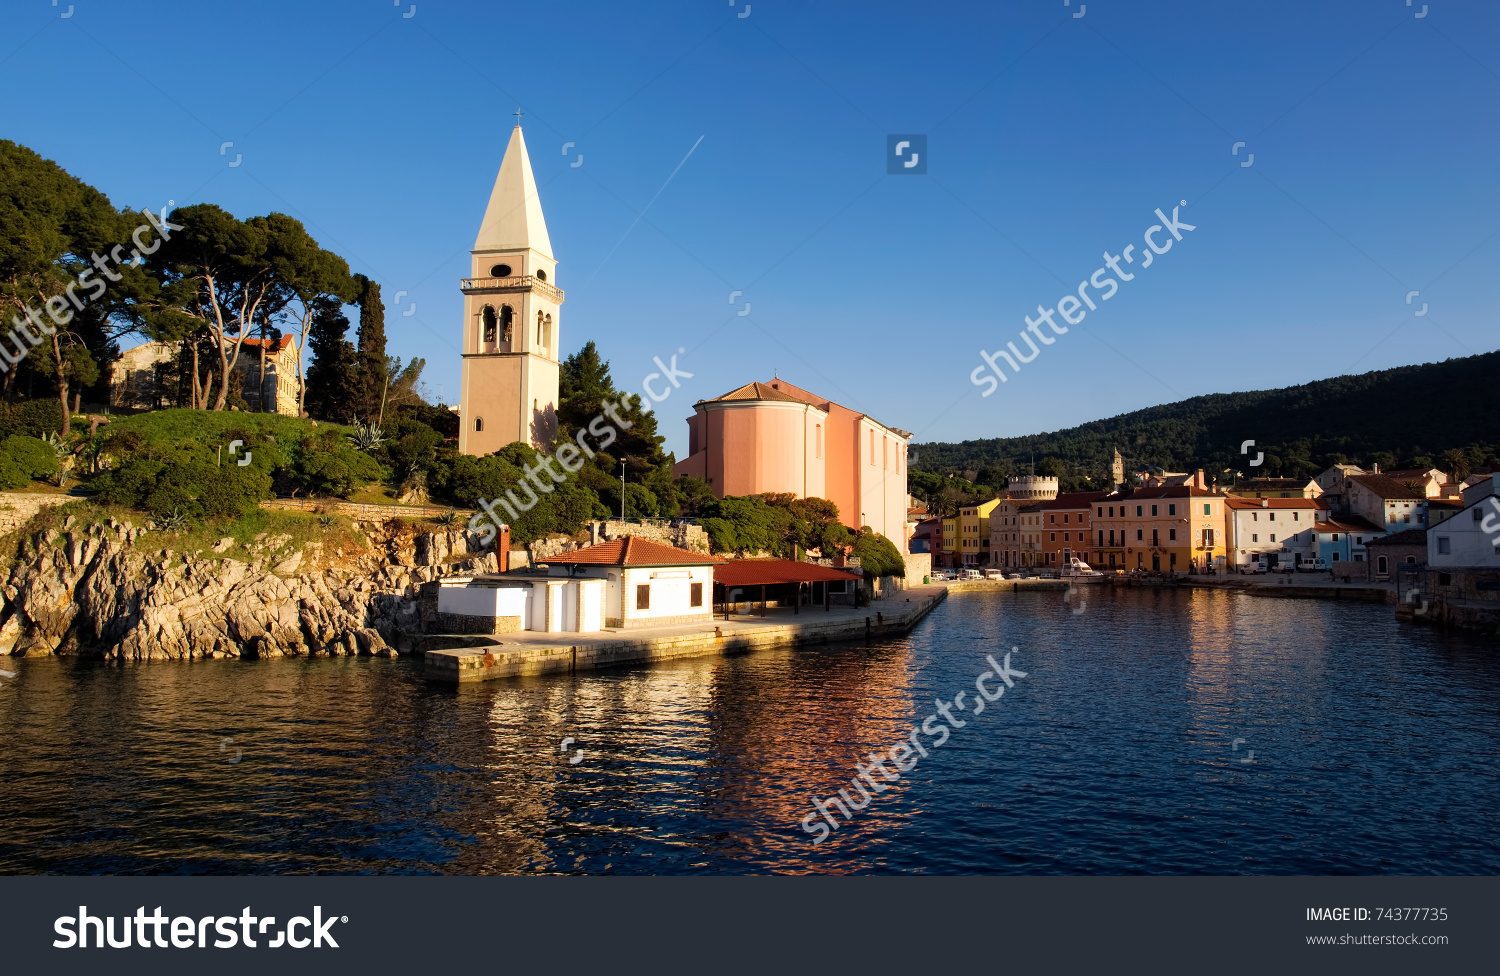 Veli Losinj Is The Second Largest Town On The Island Losinj.